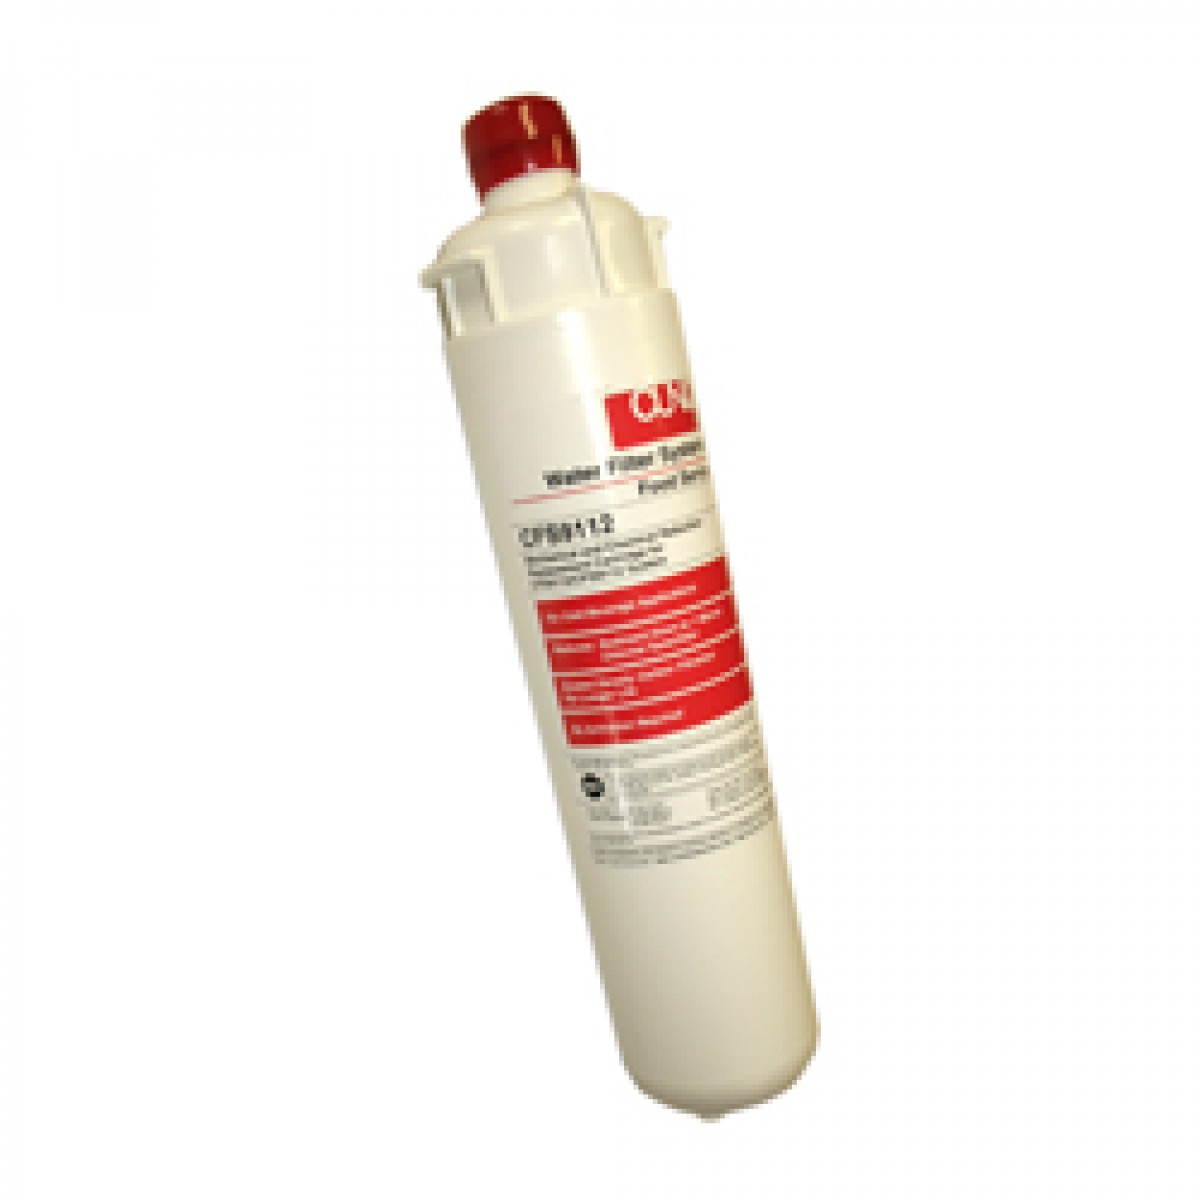 Cuno Cfs9112 Whole House Water Filter Replacement Cartridge